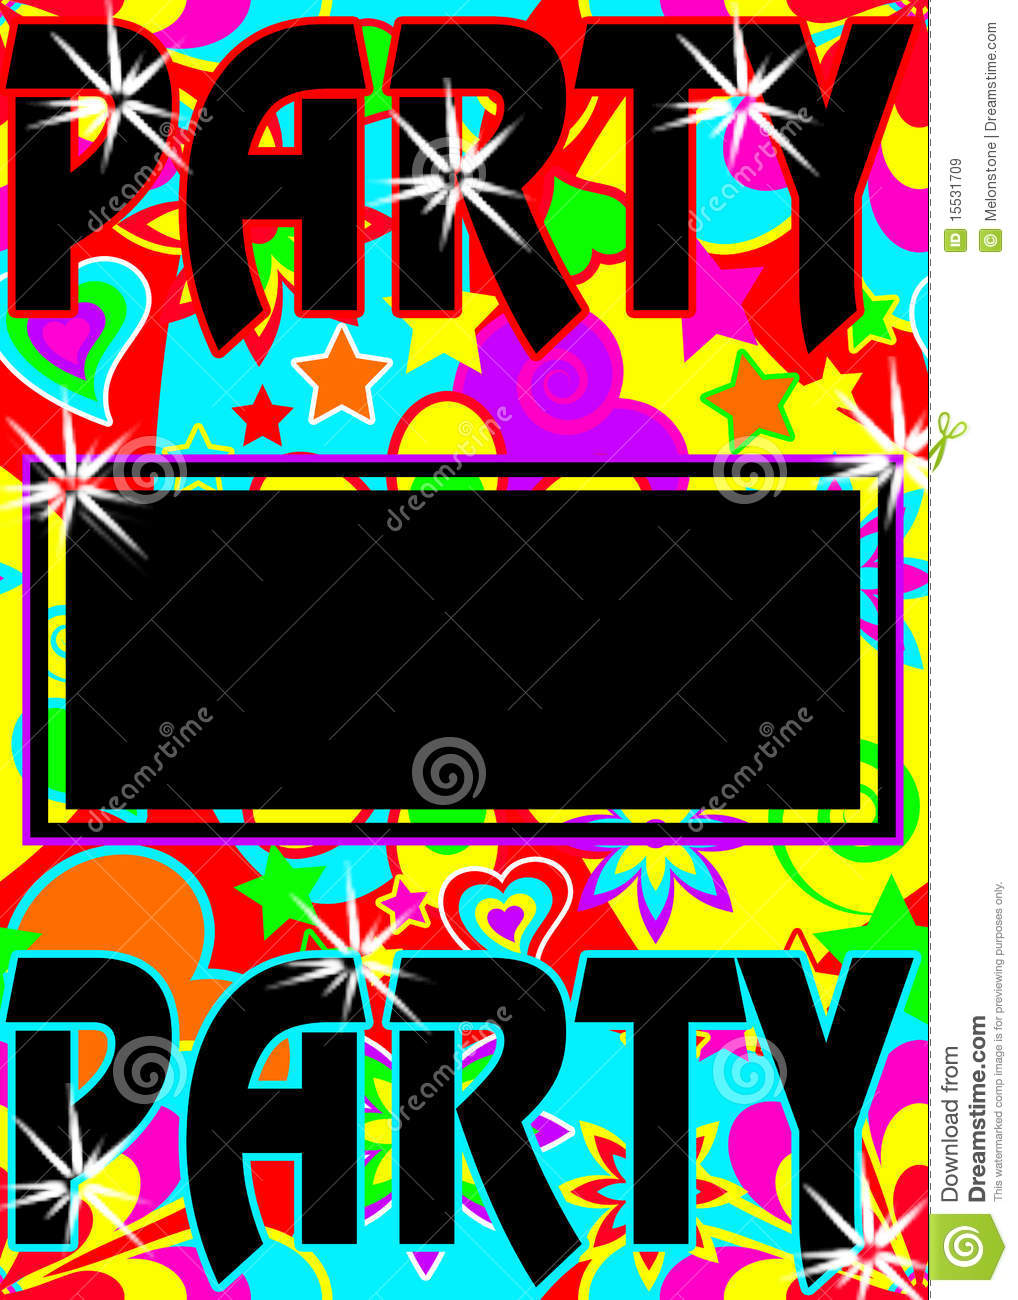 Dance Party Invitation Template feliciadayus